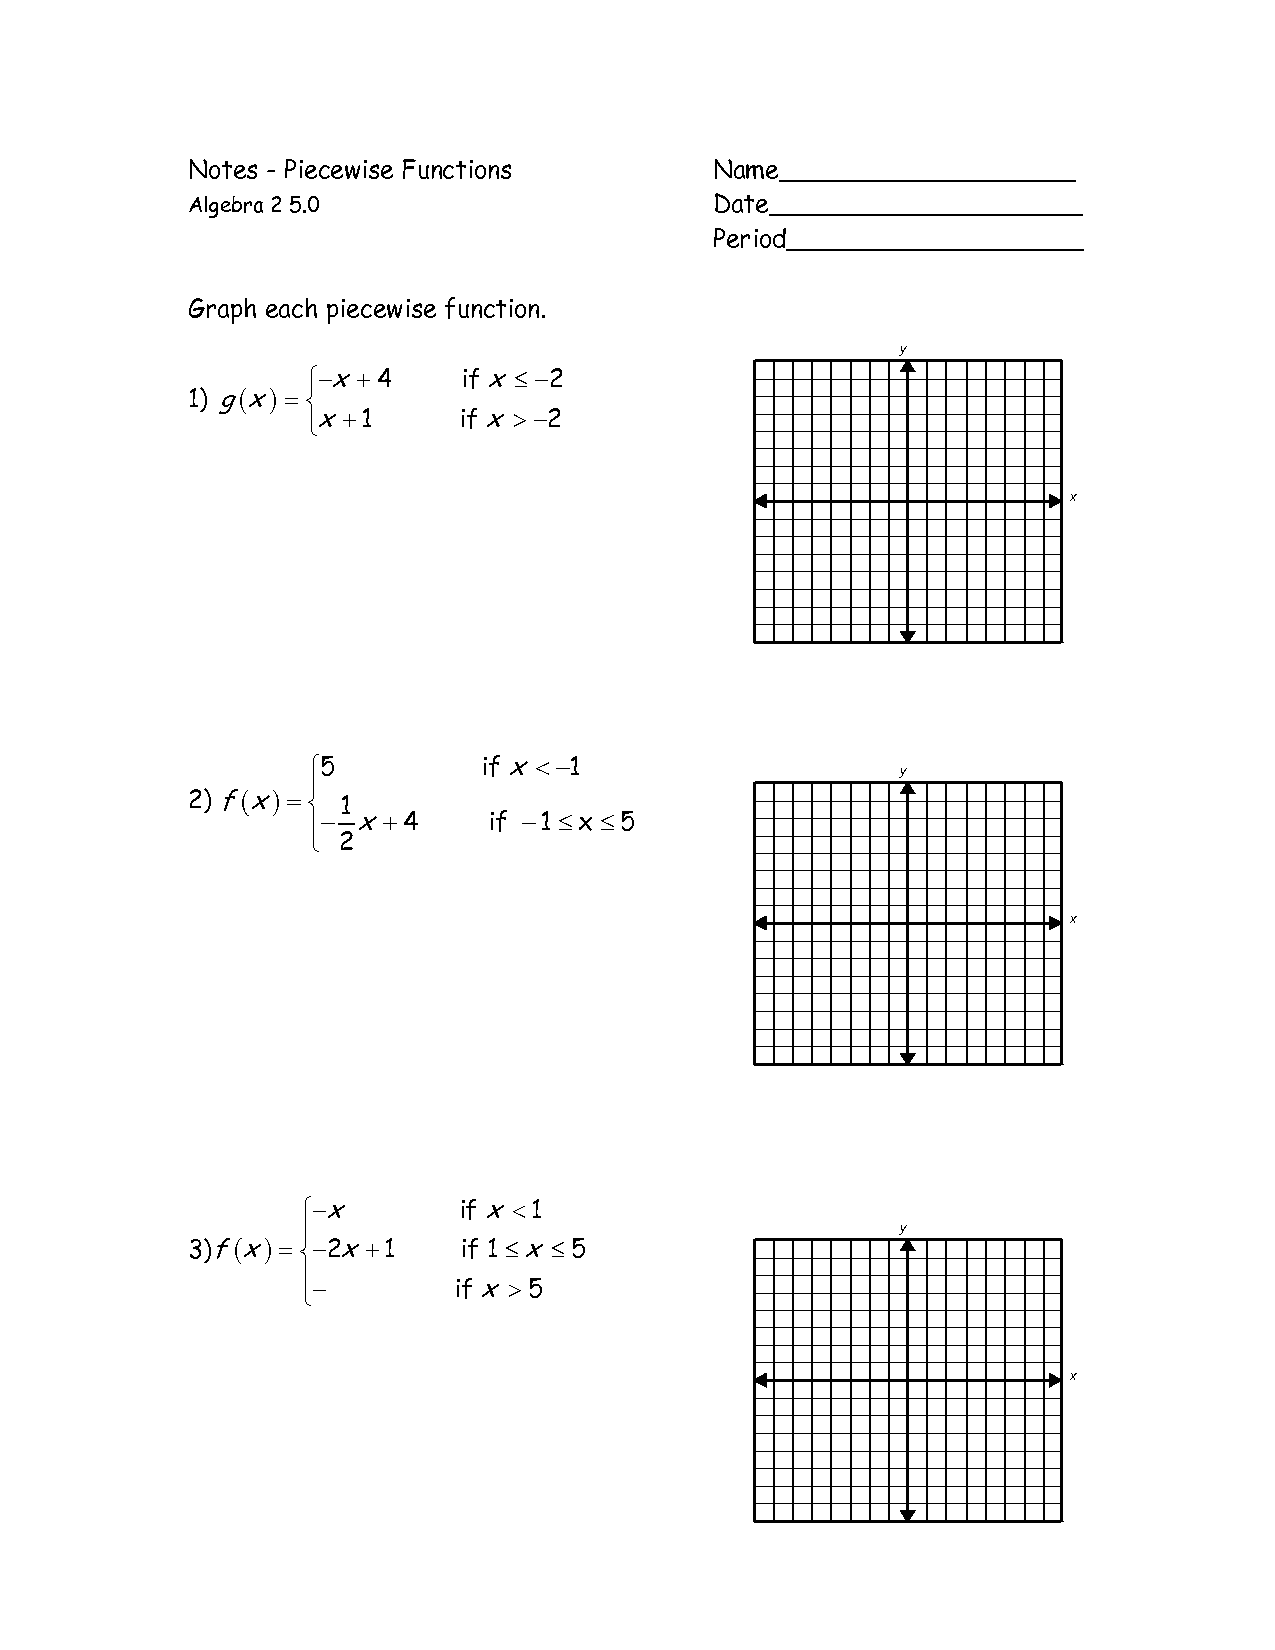 35 Graphing Piecewise Functions Worksheet With Answers